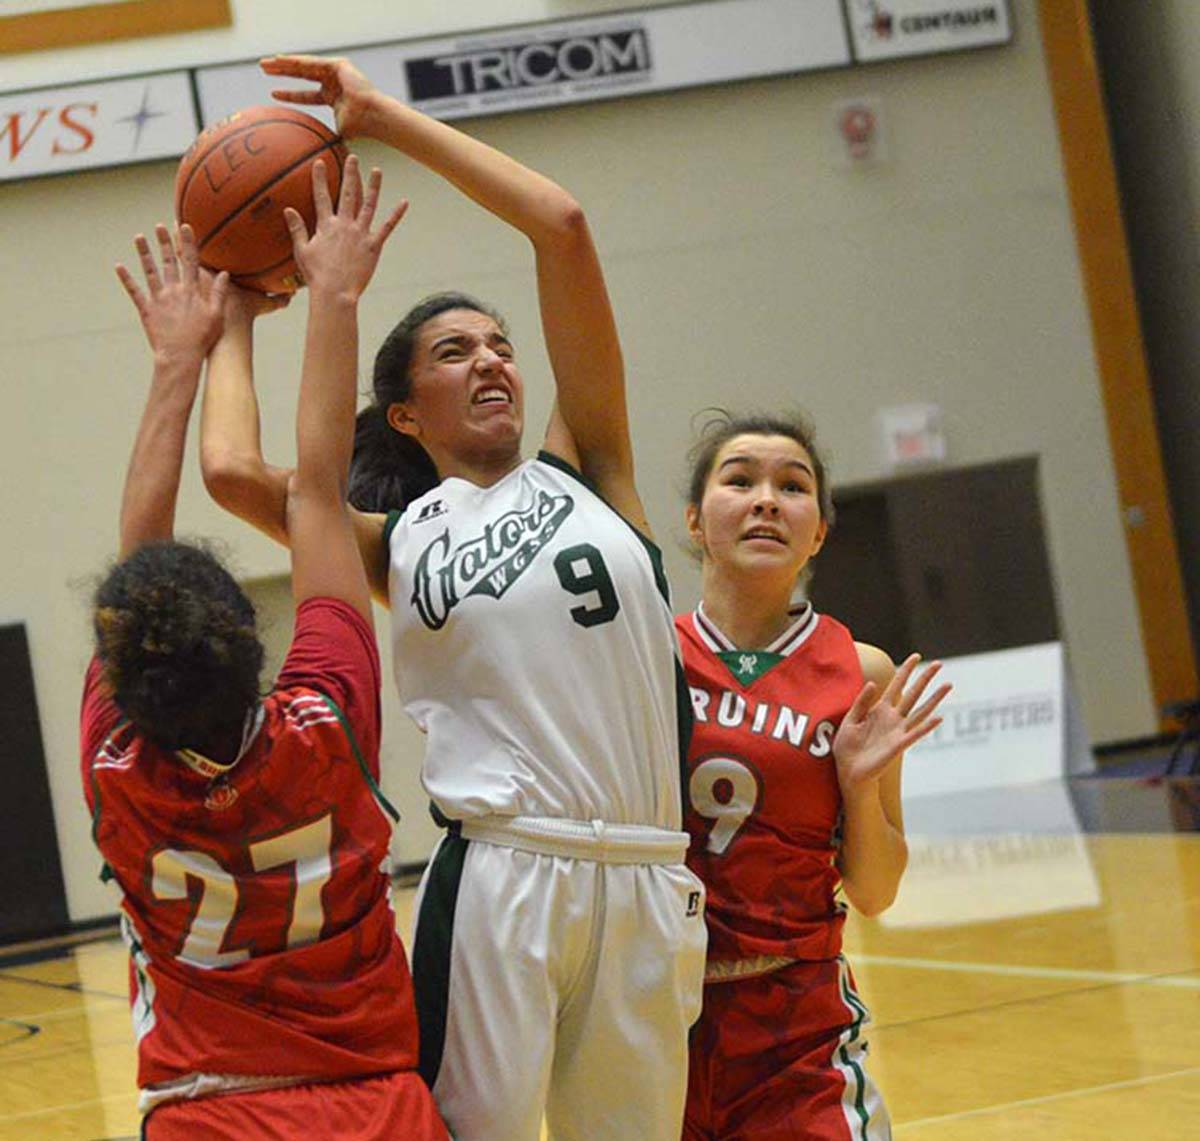 Walnut Grove Gators' Jessica Wisotzki drives to the hoop during opening round action at the Tsumura Basketball Invitational at the Langley Events Centre. Gary Ahuja Langley Times